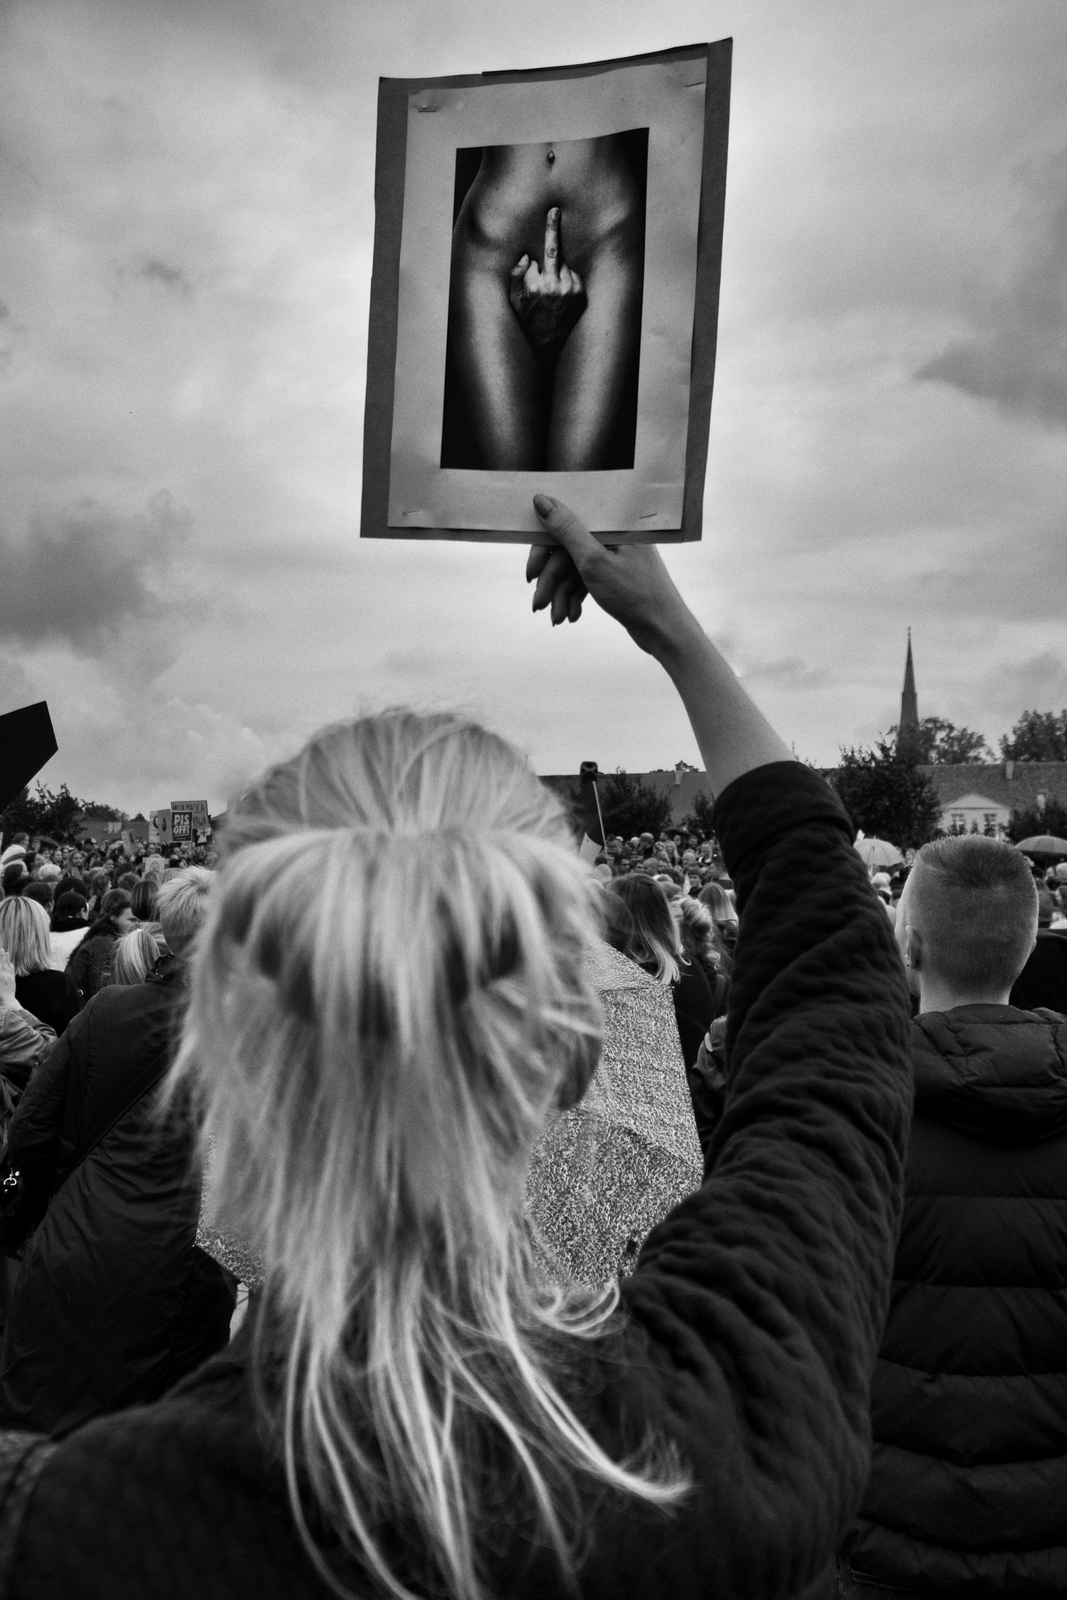 """Black Protest – October 3, 2016, Poland, in the so-called """"Black Monday"""" women took time off work to take to protest against the tightening abortion laws and access to contraception. It's sad and pathetic as the new government in Poland wants to have an impact on everything. The scale of the protest, its form, the number of people gathered spontaneously and their cross exceeded my wildest expectations. Fuji XPro-2, XF 10-20, 1/320s, f5.6, ISO 400"""